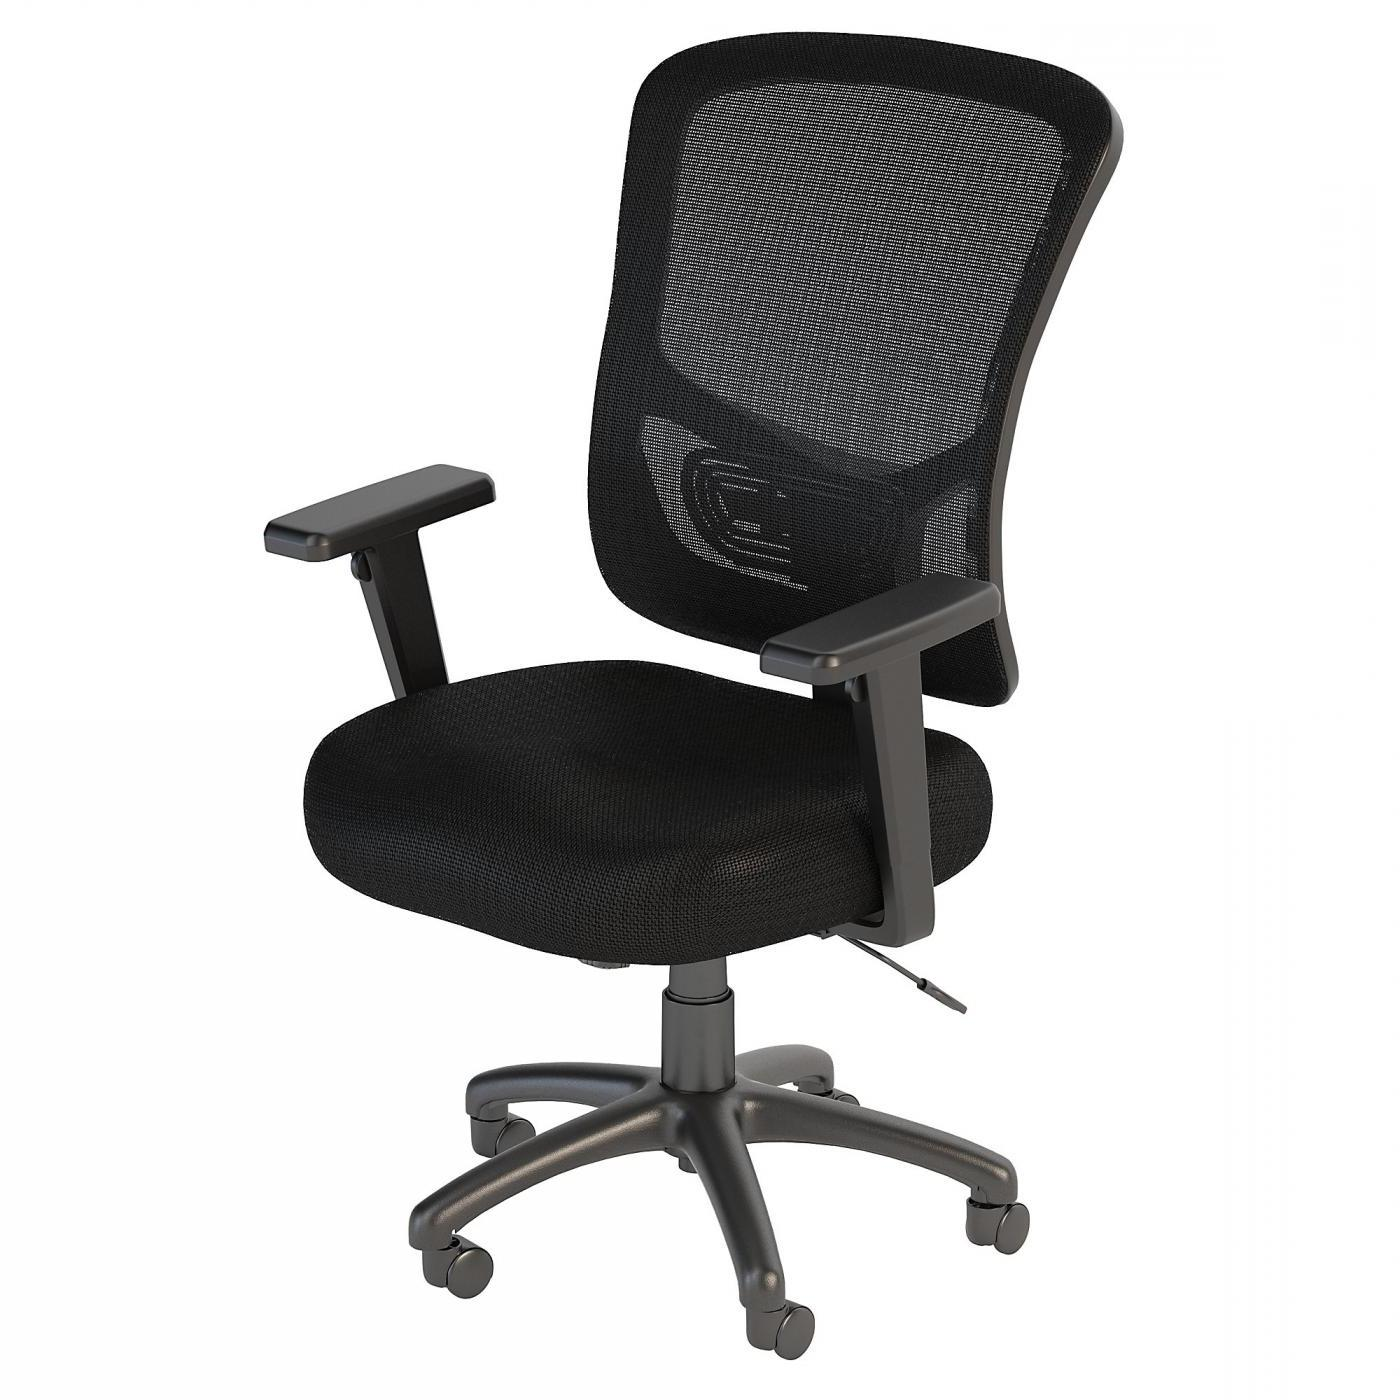 <font color=#c60><b>BUSH BUSINESS FURNITURE CUSTOM COMFORT HIGH BACK MESH EXECUTIVE OFFICE CHAIR. FREE SHIPPING</font></b> </font></b>